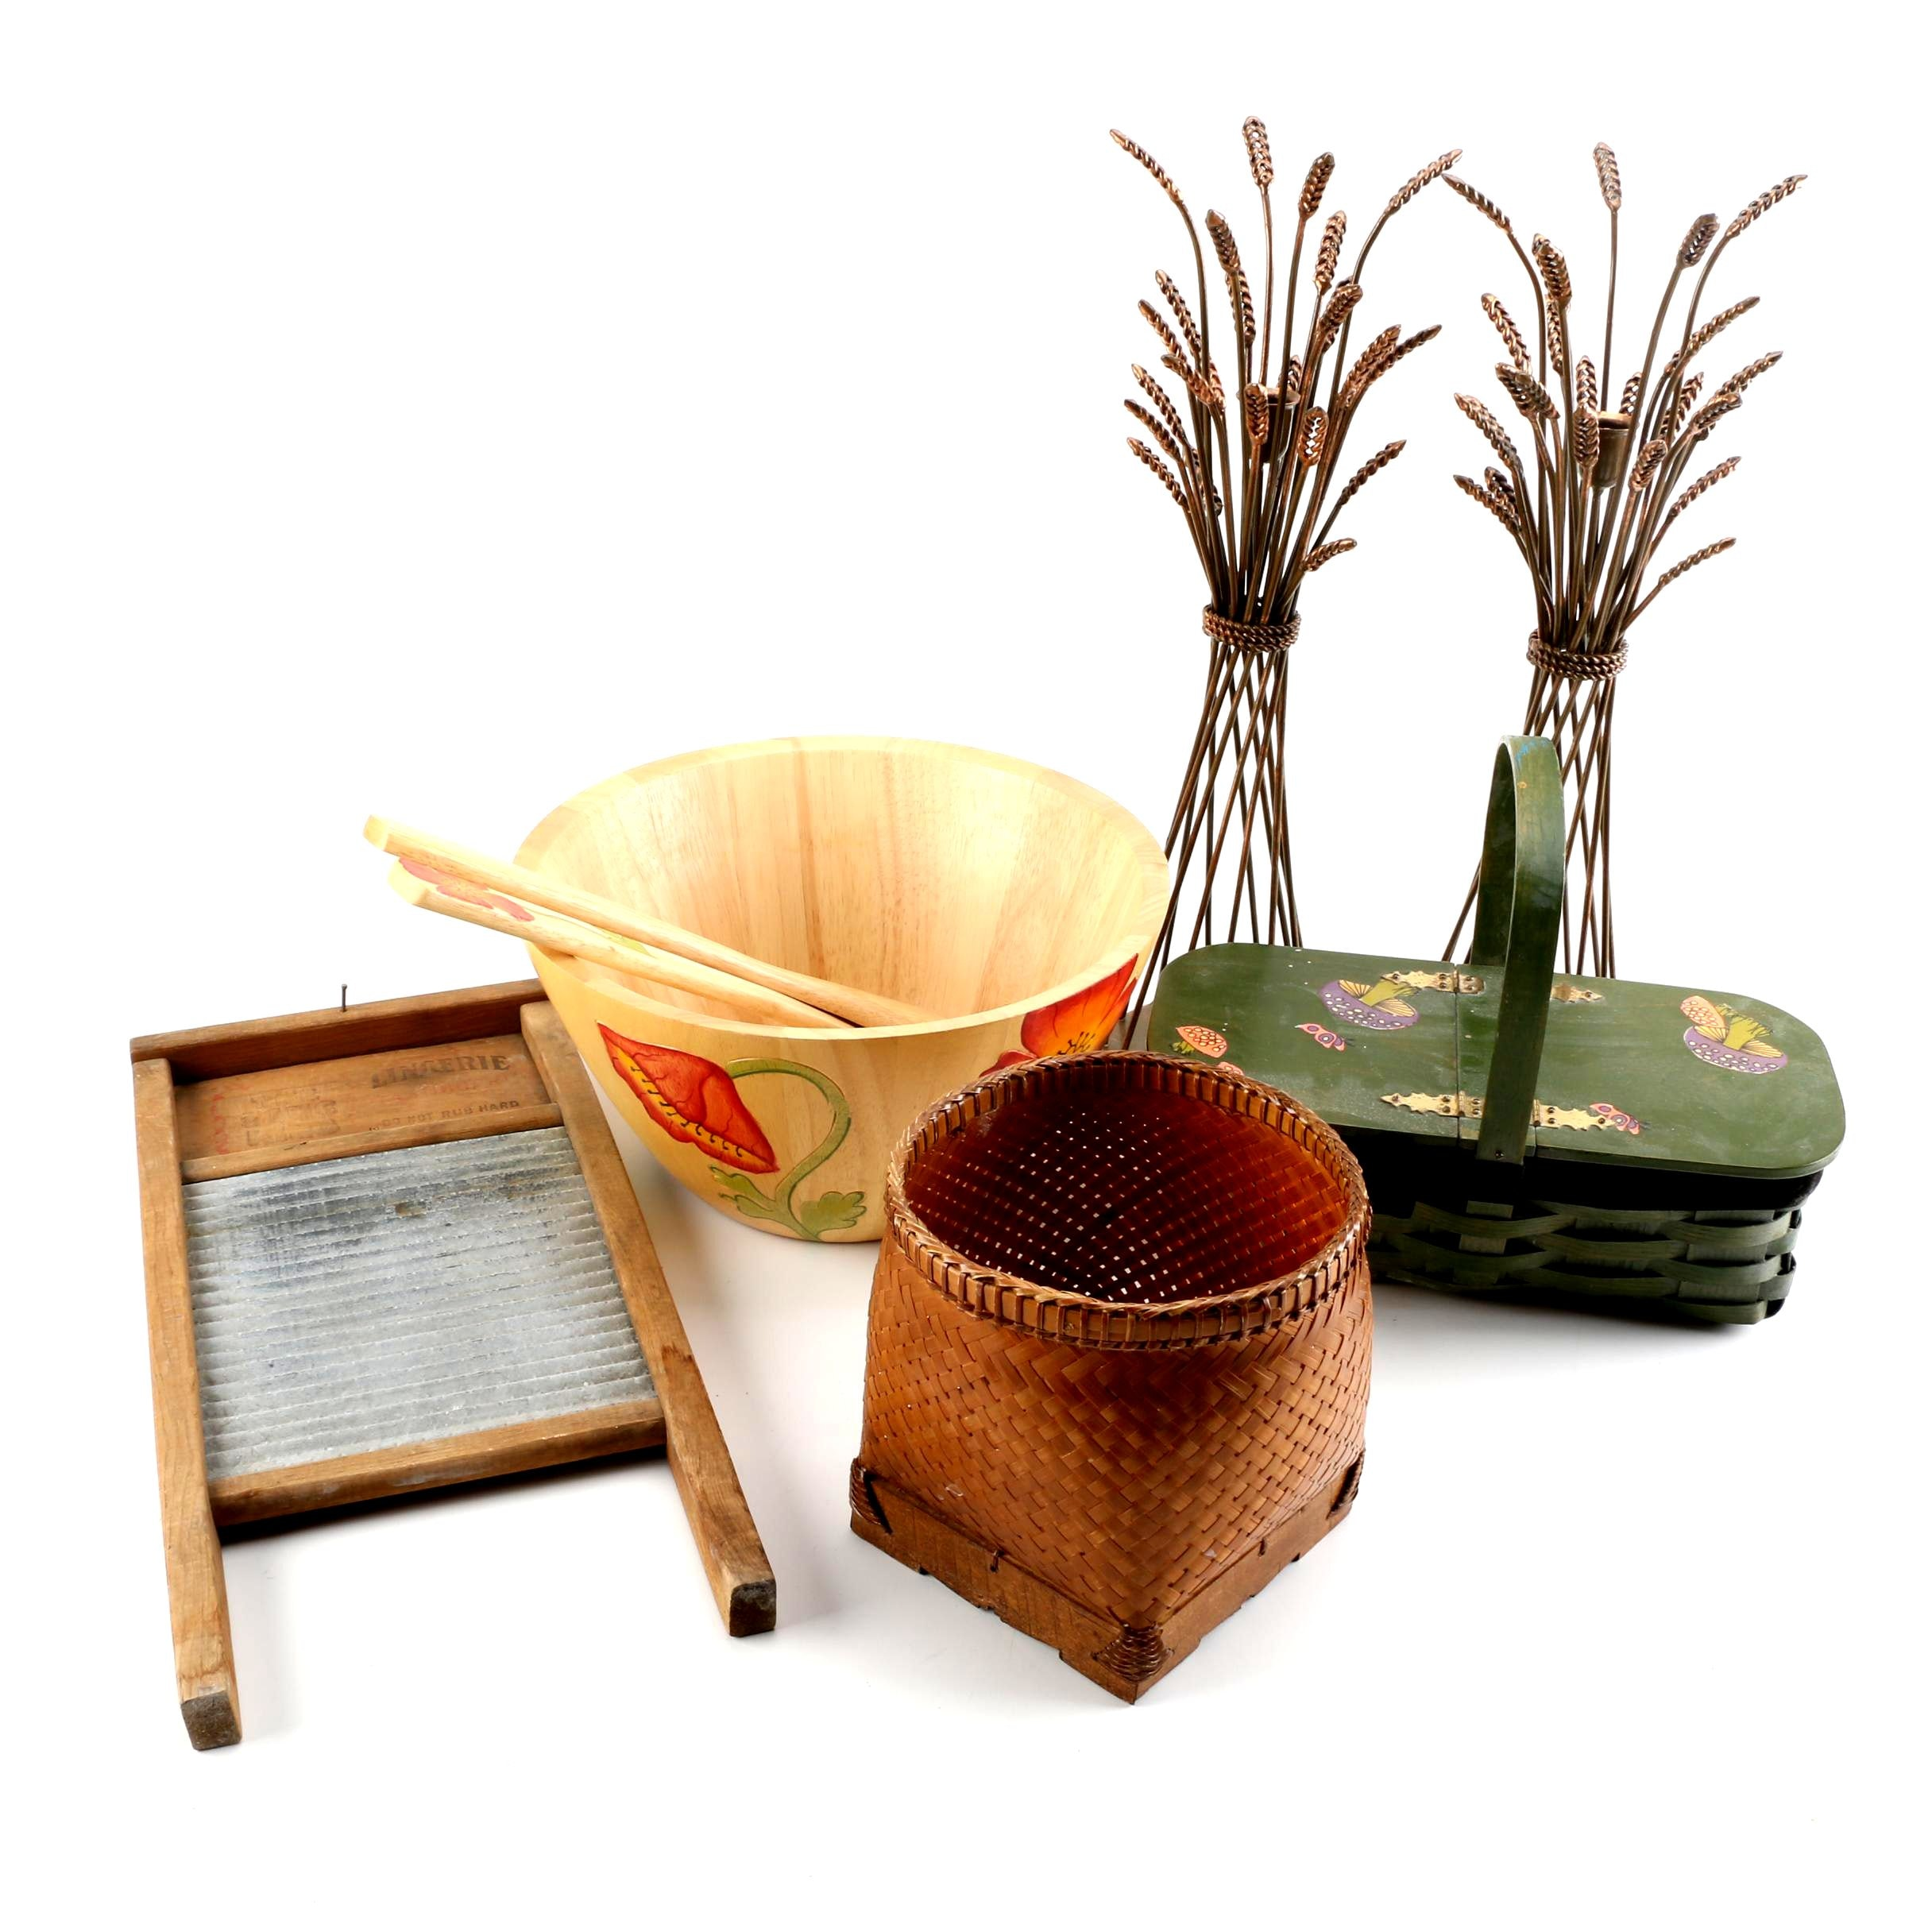 Wooden, Wicker and Metal Home Decor